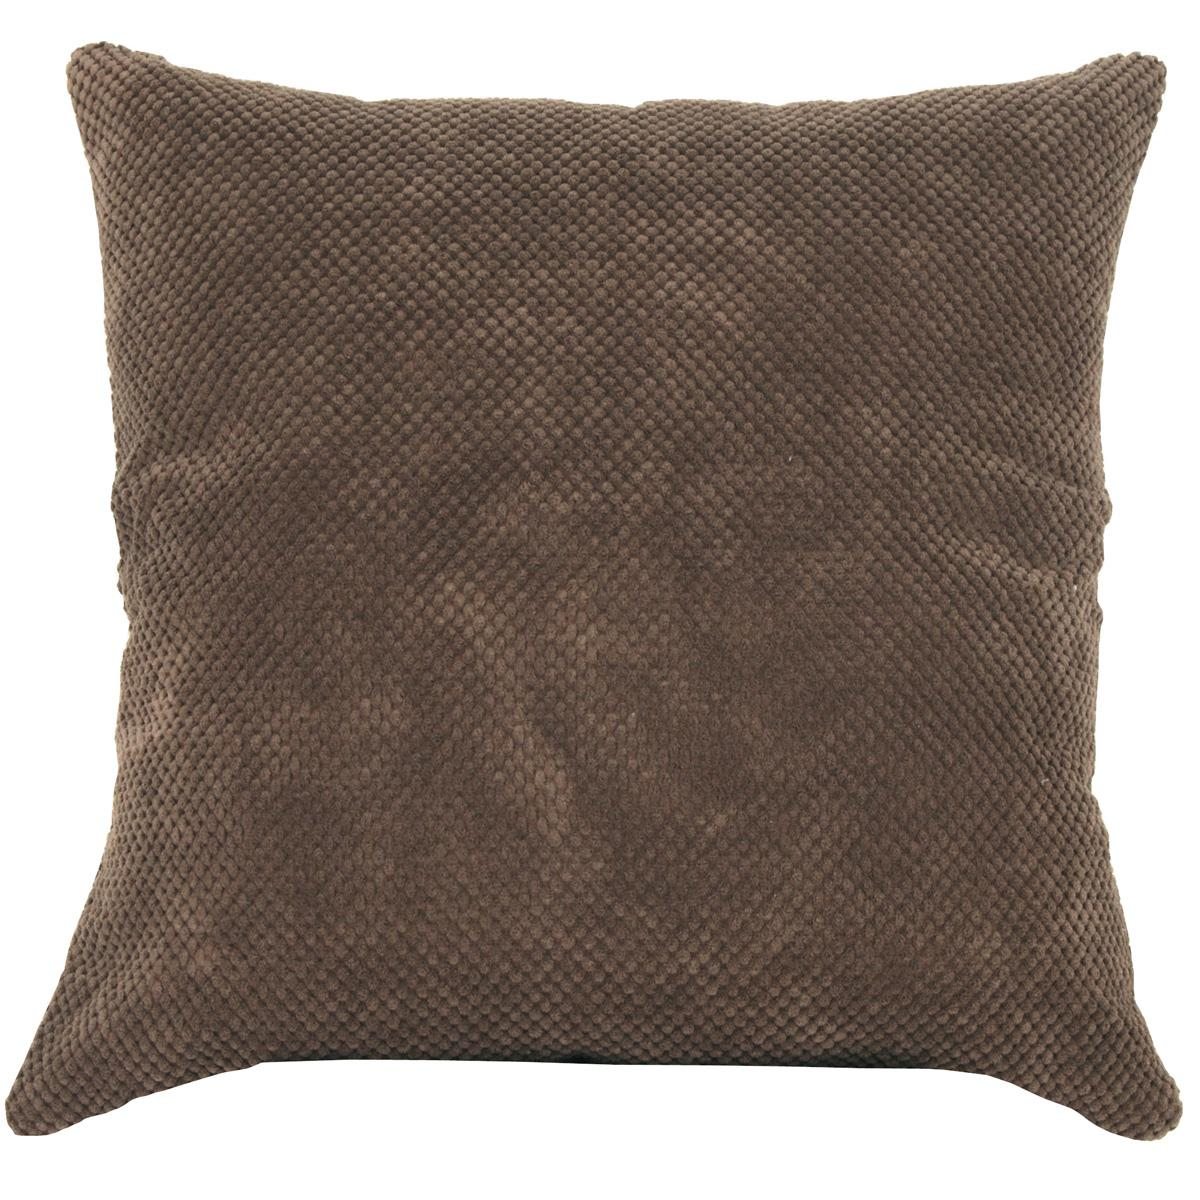 J Rosenthal Cushions And Throws Chenille Spot Cushion Cov Chocolate Picture